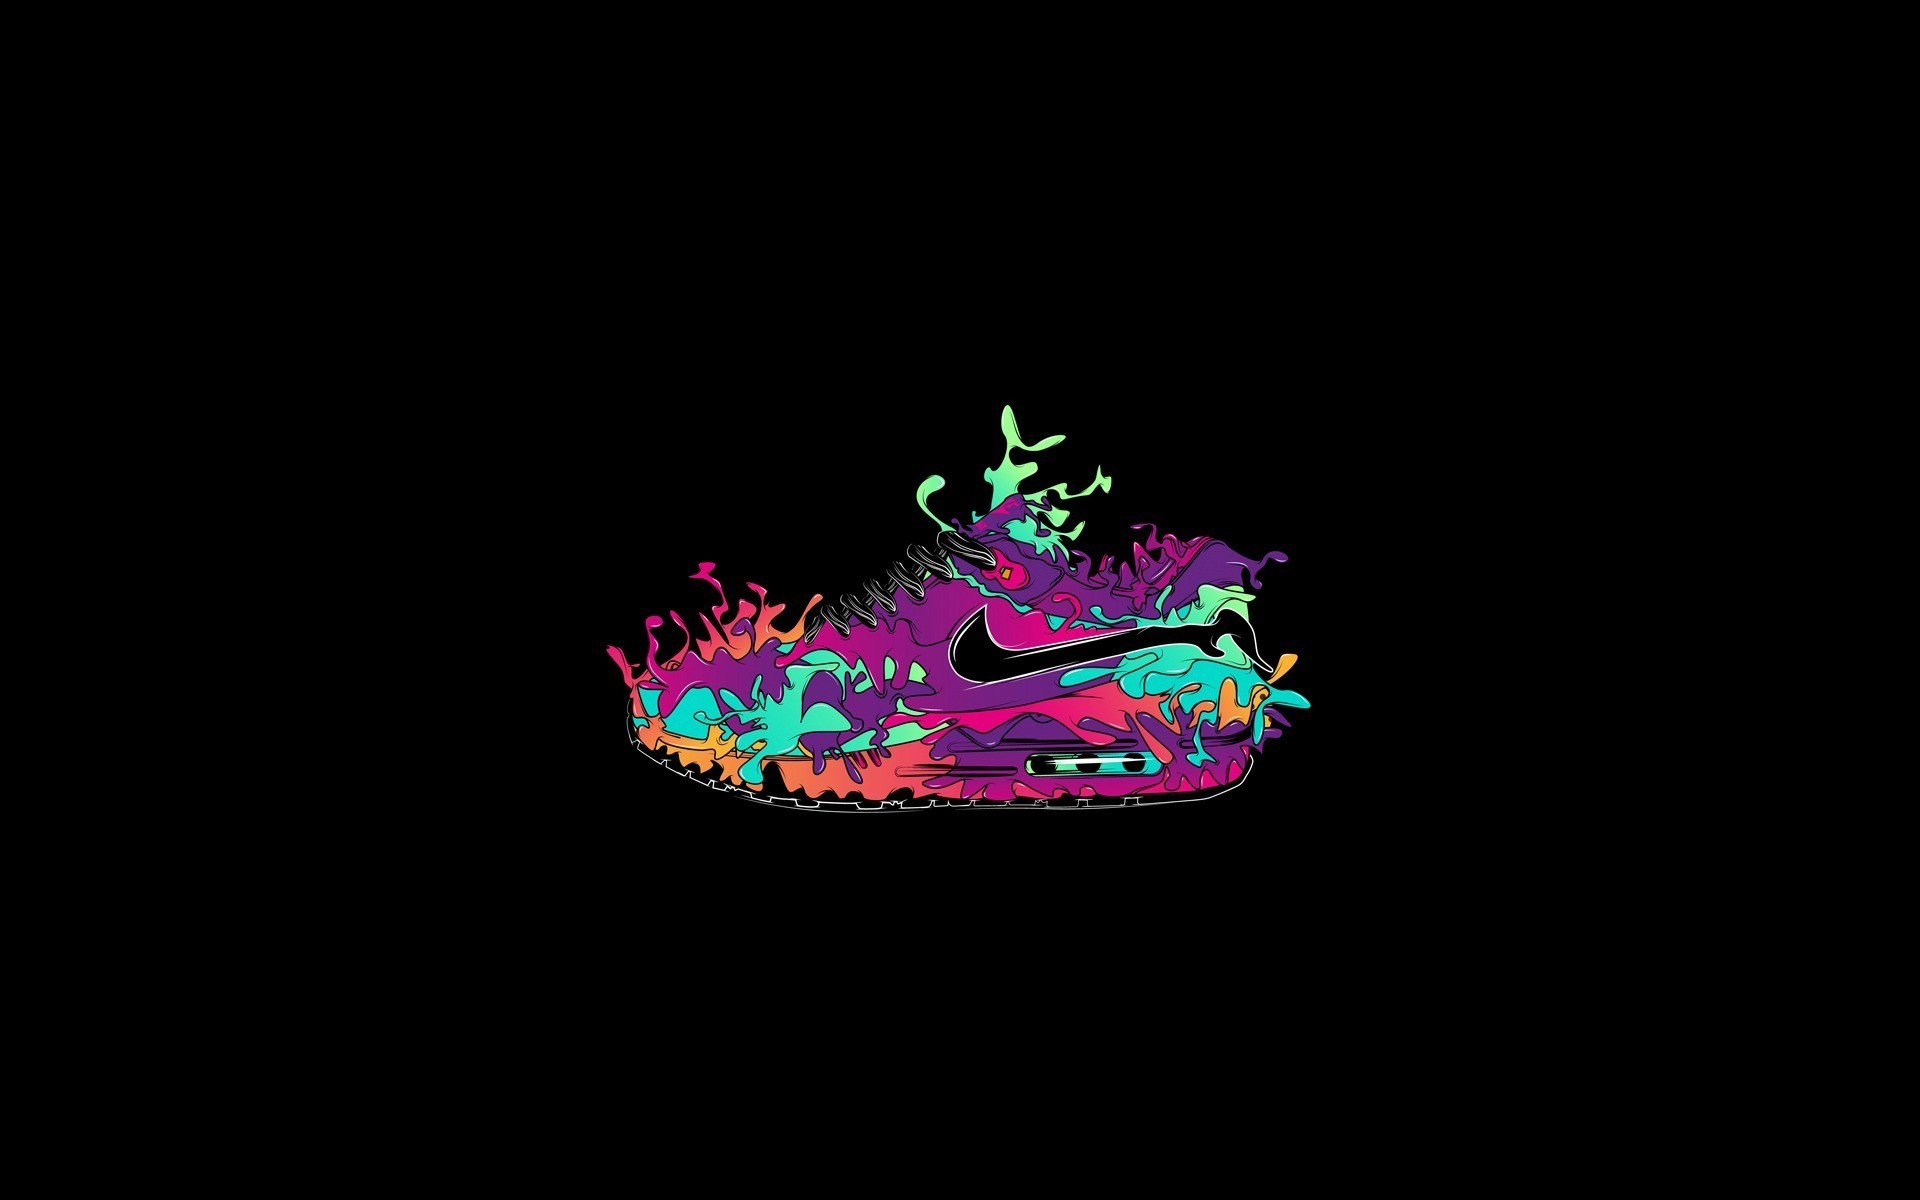 Nike Wallpapers 2016